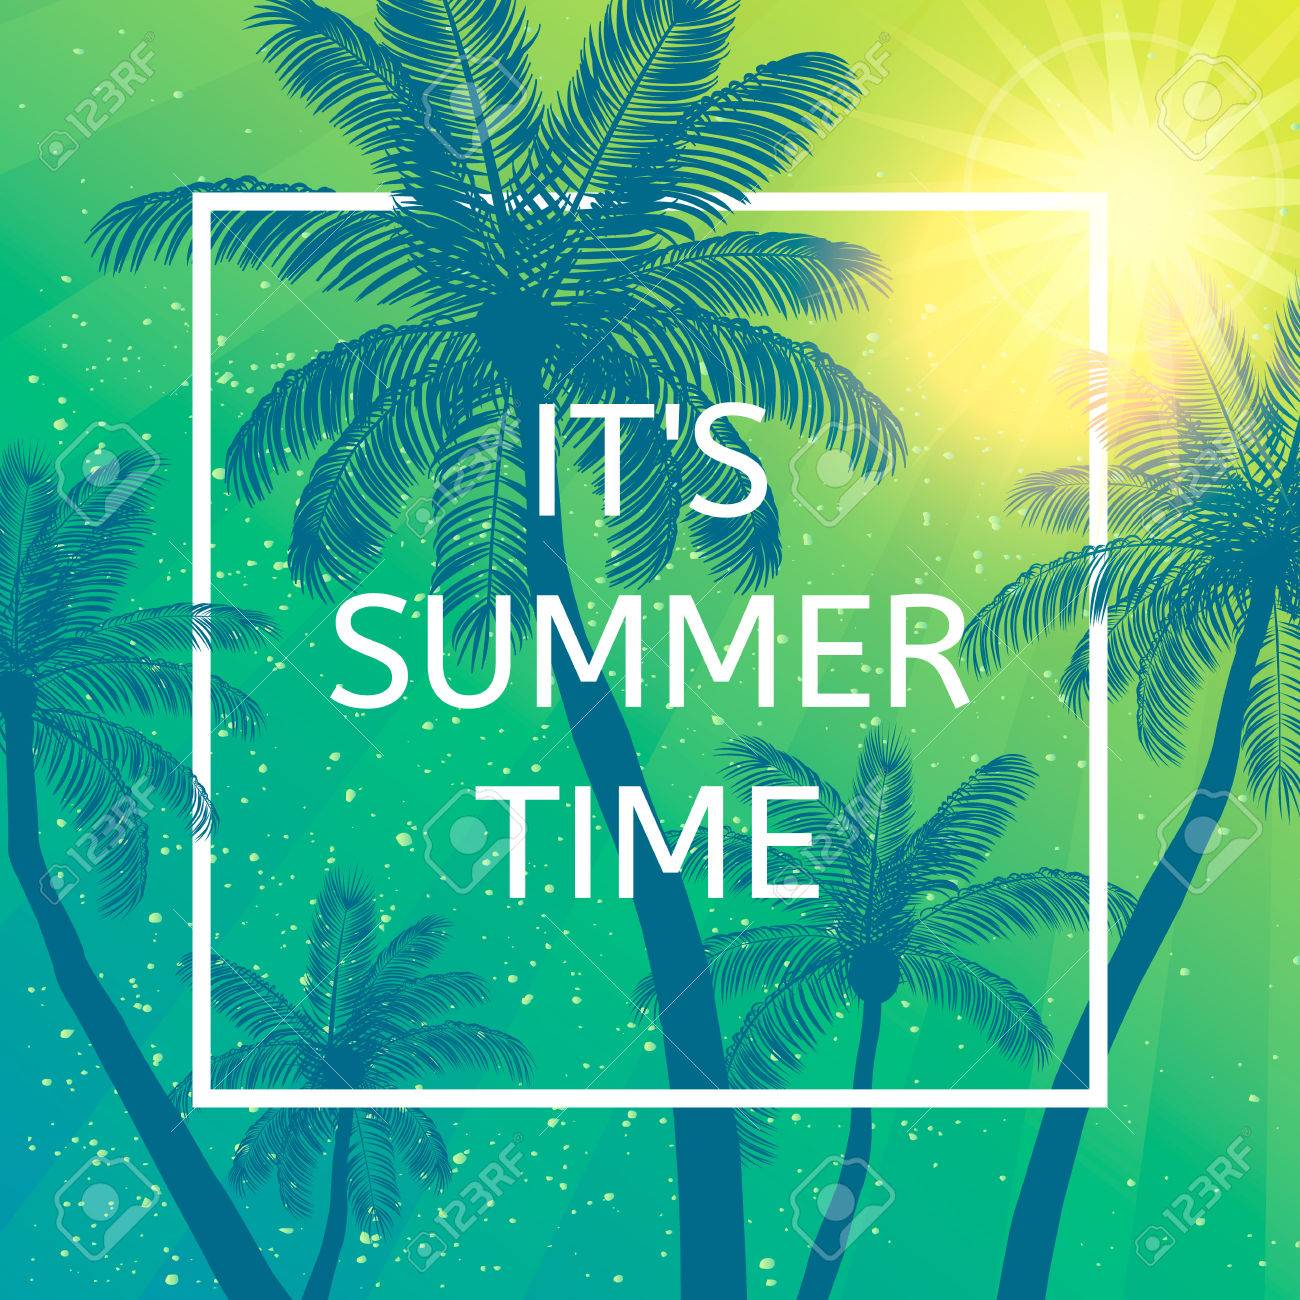 Its Summer Time Wallpaper Fun Party Background Picture 1300x1300